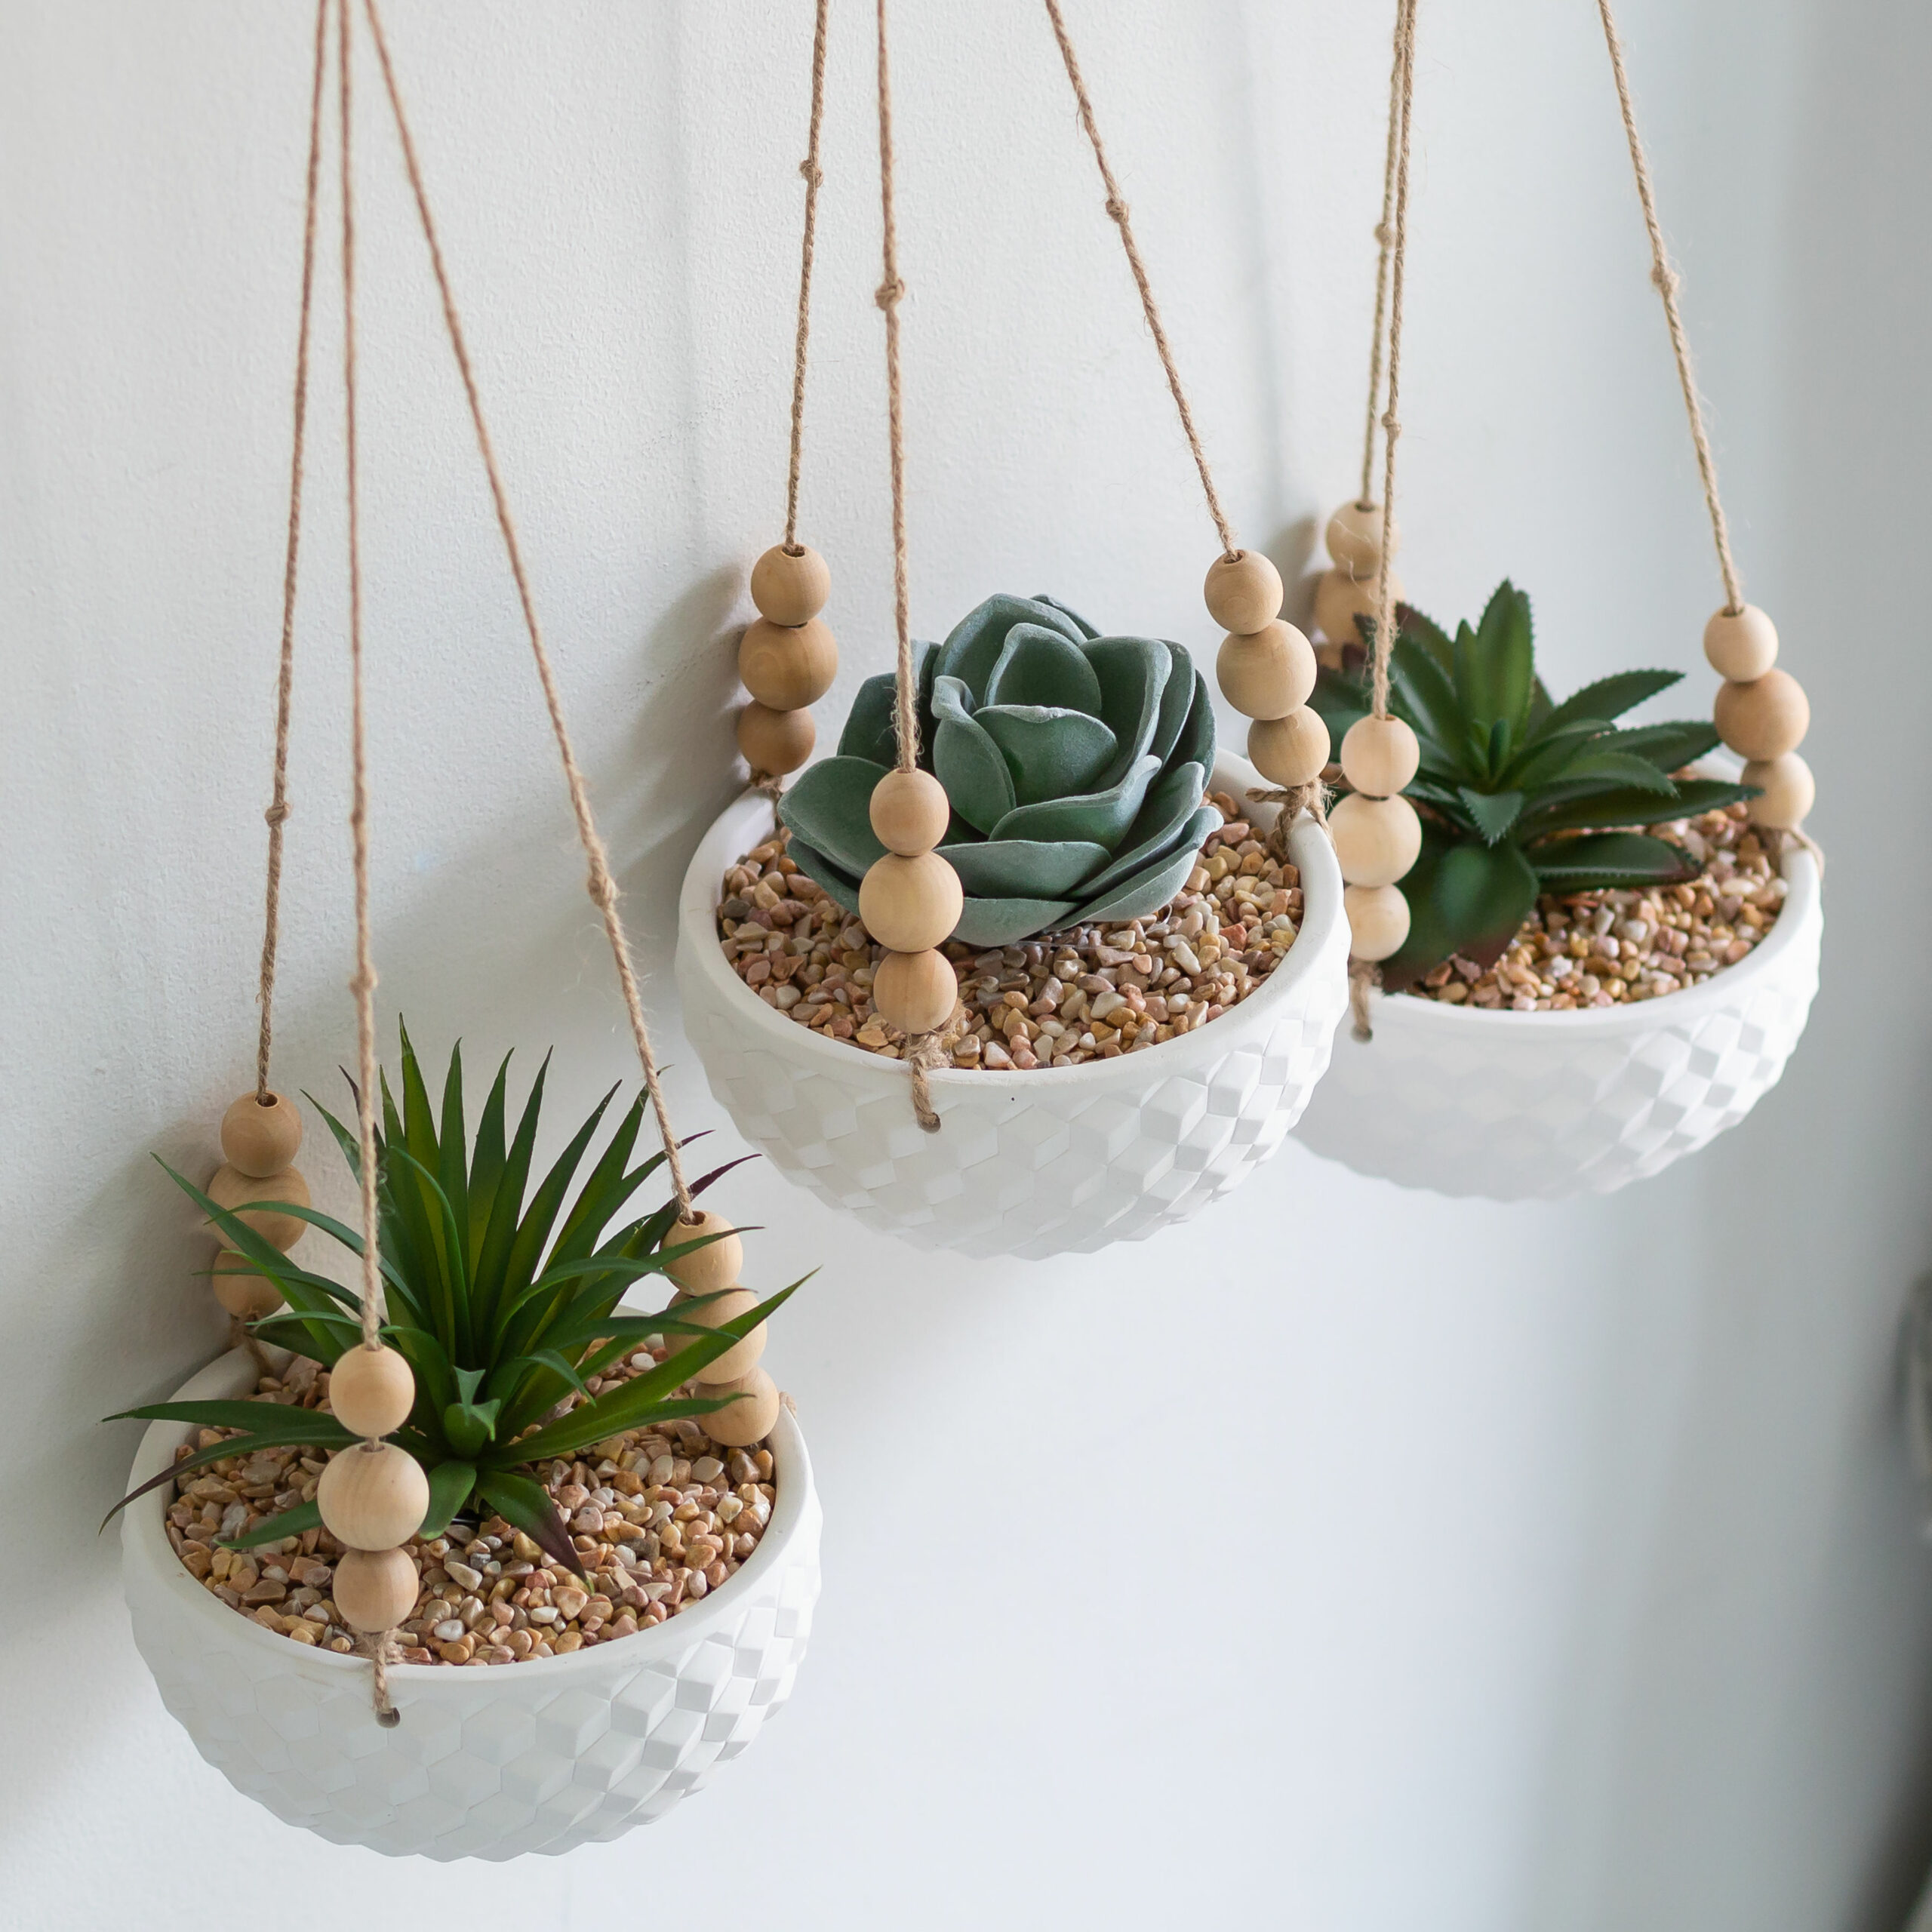 Faux Succulent Plant in Hanging Beaded Planter